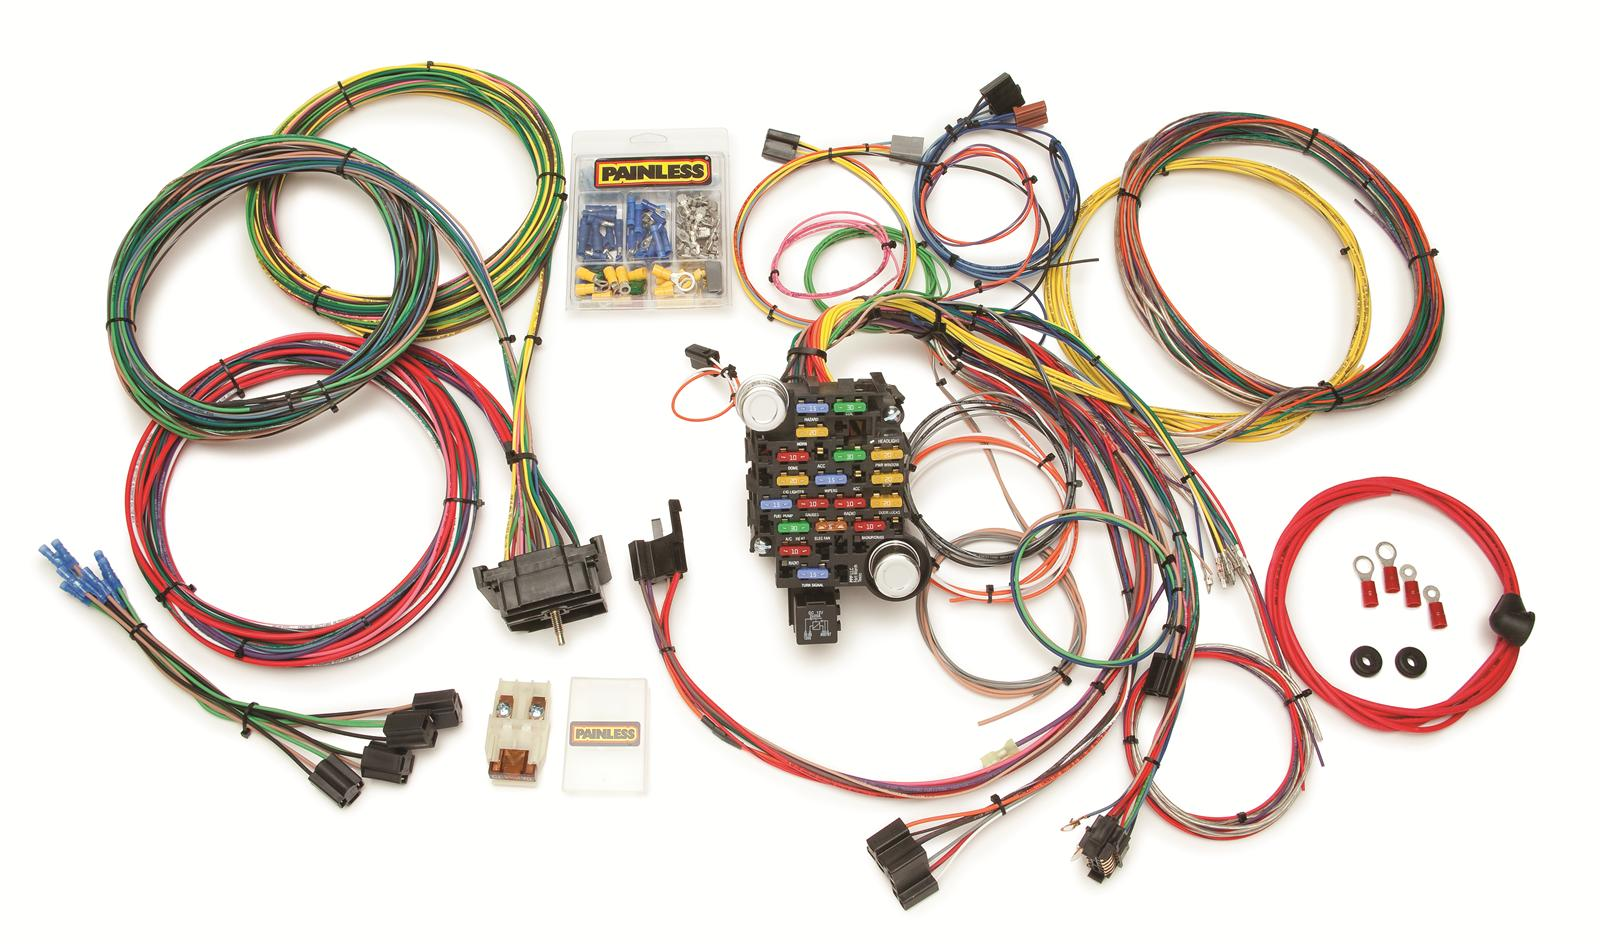 prf 10206_xl 1973 c10 wiring harness wiring diagram simonand sd-trk wiring diagram at mifinder.co